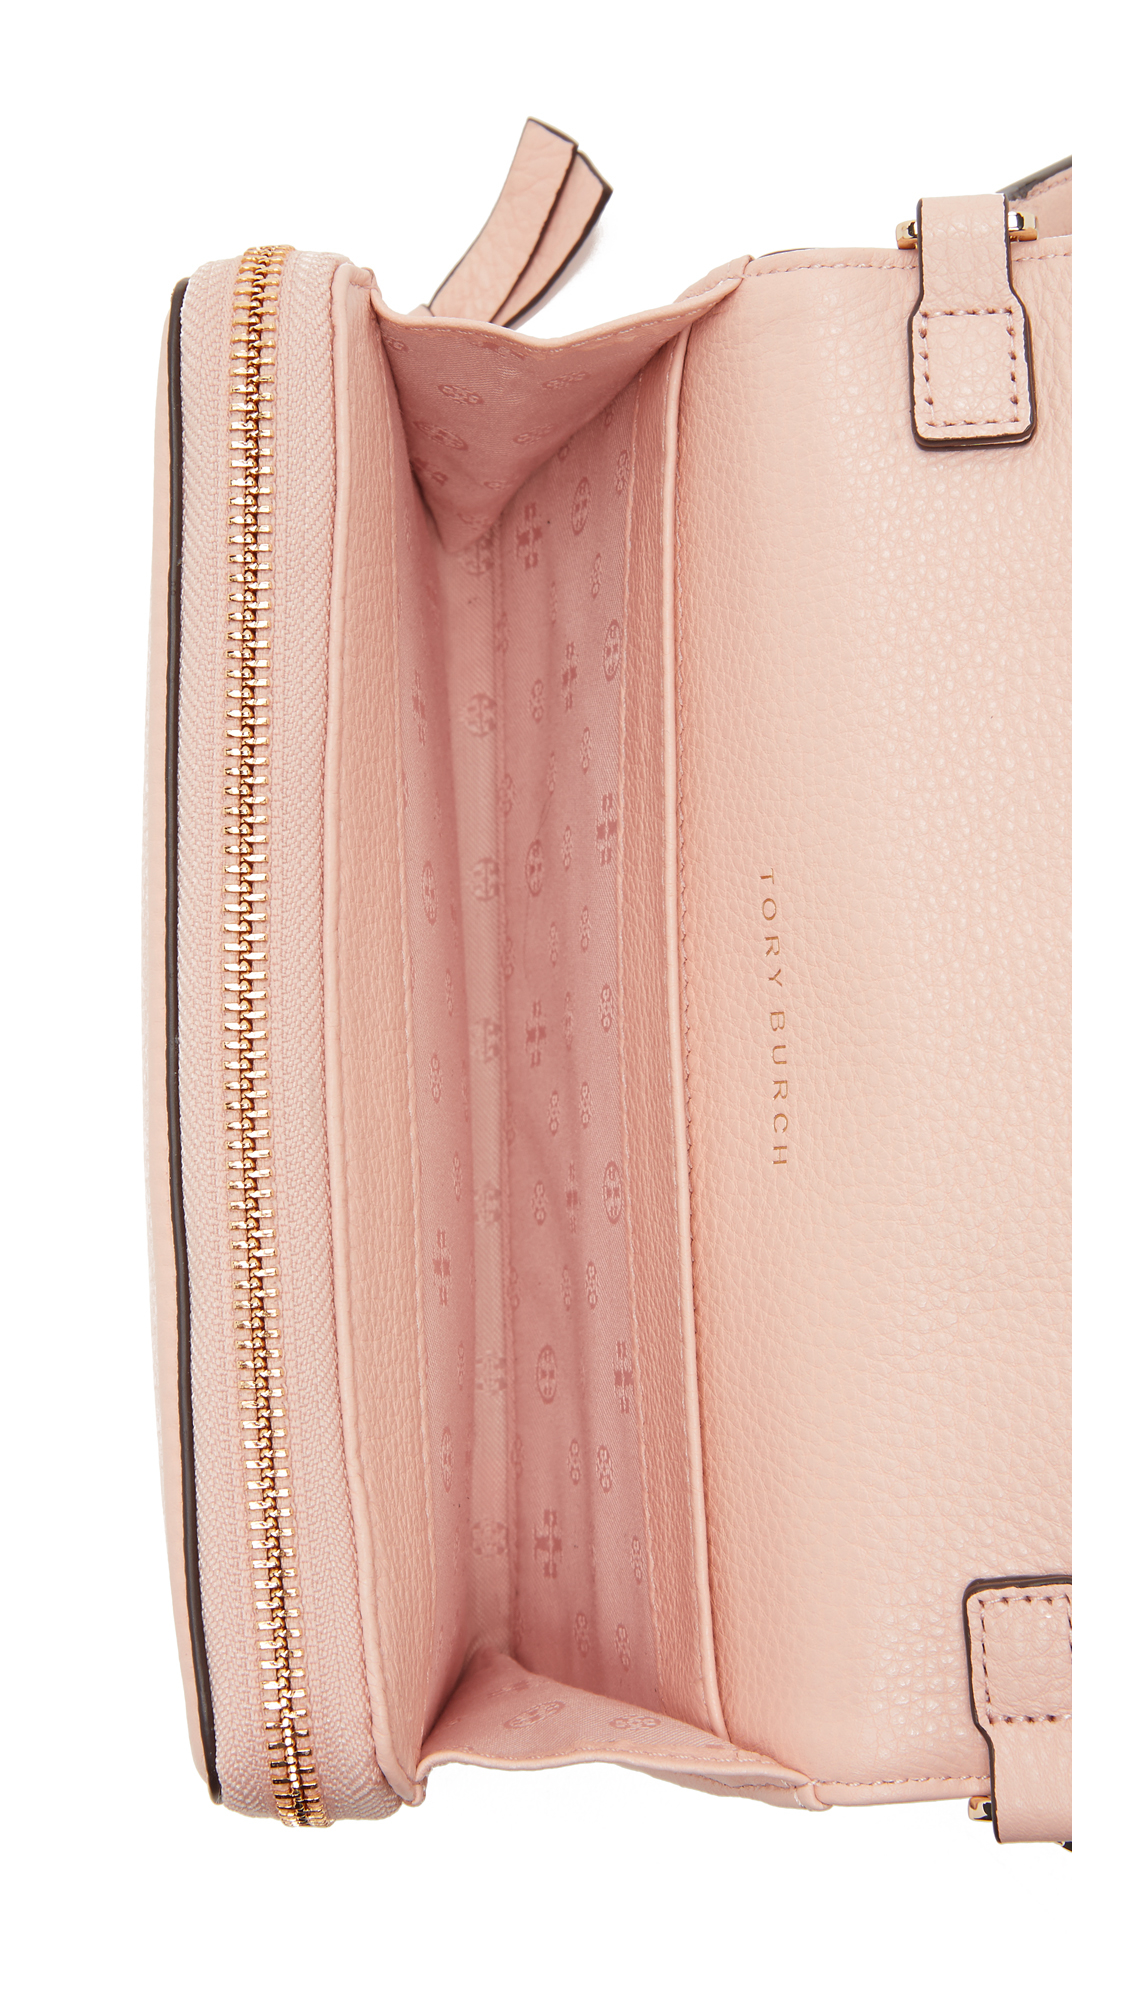 0e46d7091af Lyst - Tory Burch Thea Flat Wallet Cross Body Bag in Pink